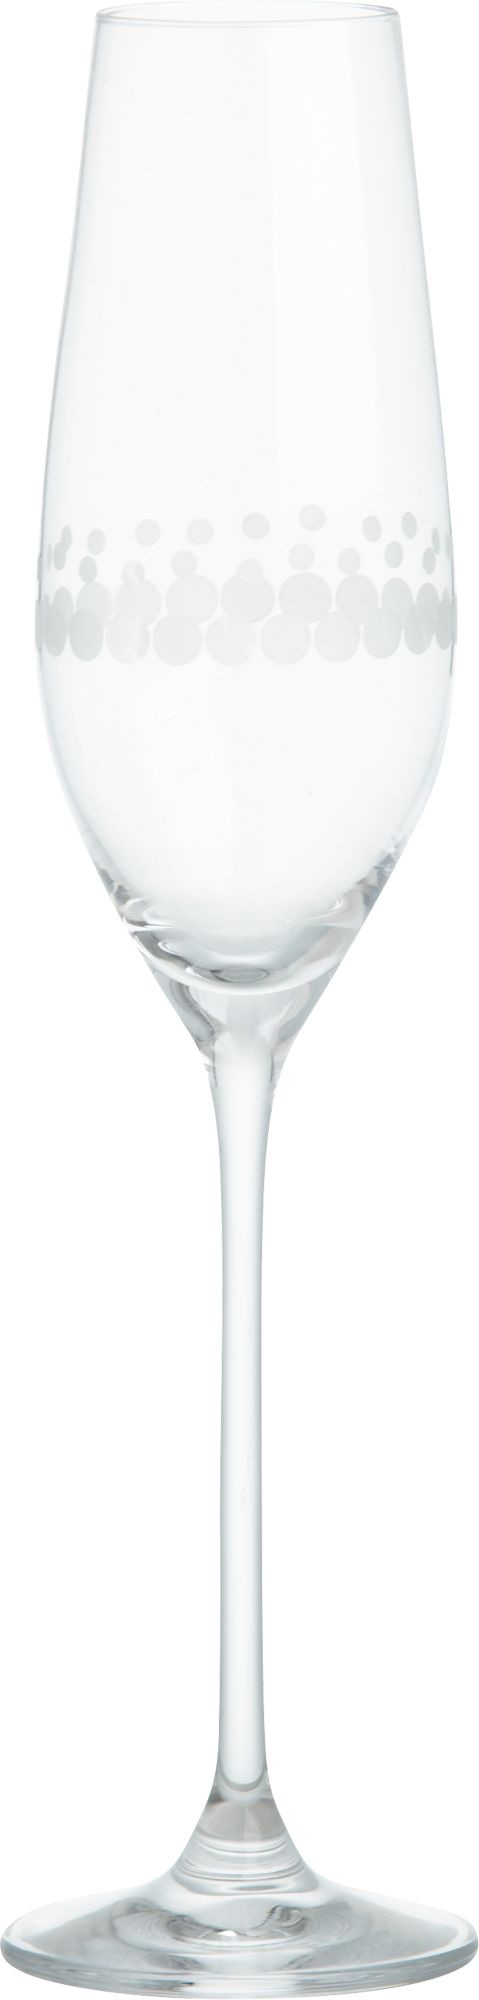 Livi Sparkling Wine Glass